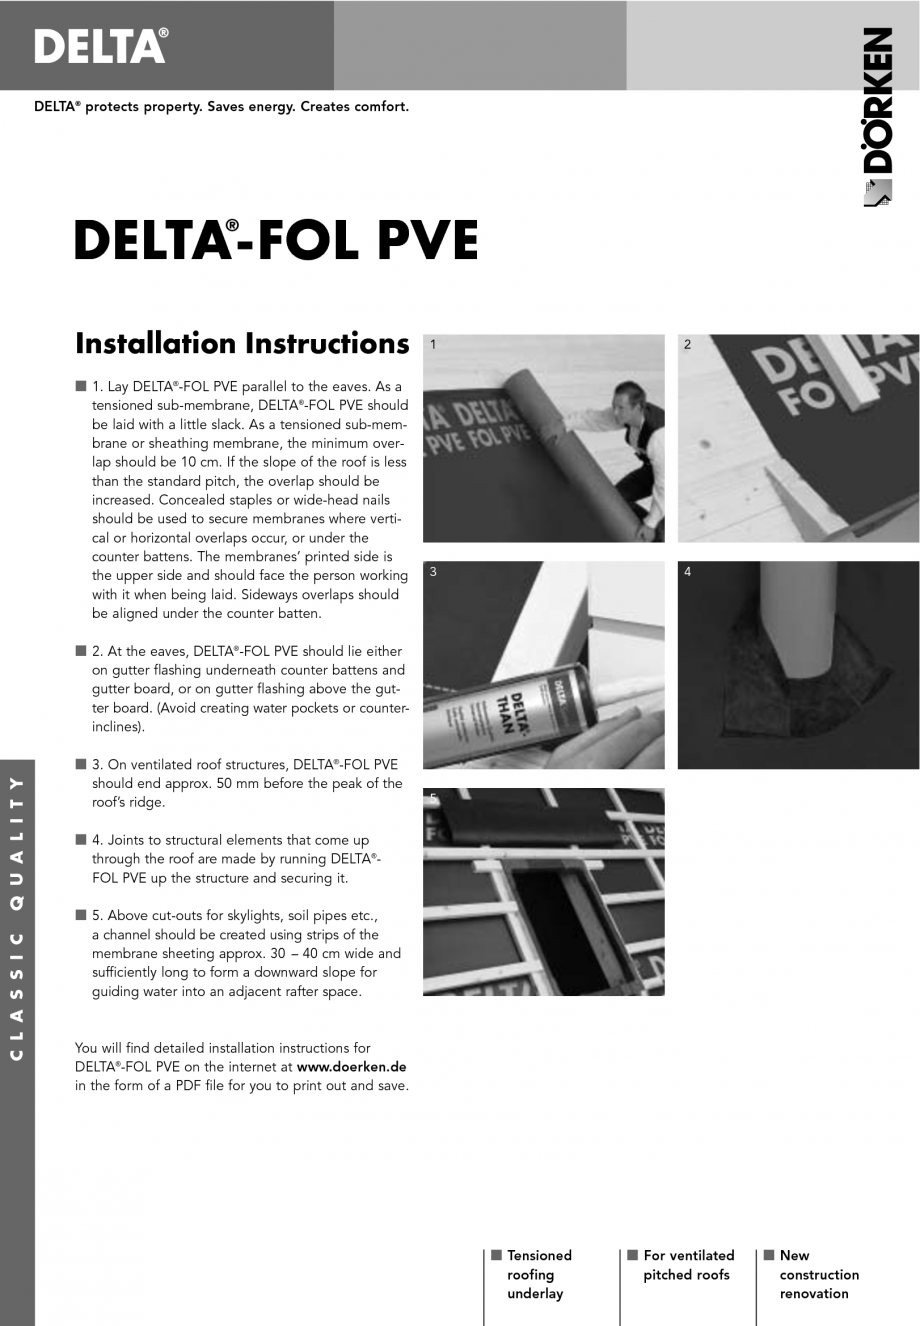 Instructiuni montaj, utilizare Membrane pentru acoperisuri ventilate cu astereala